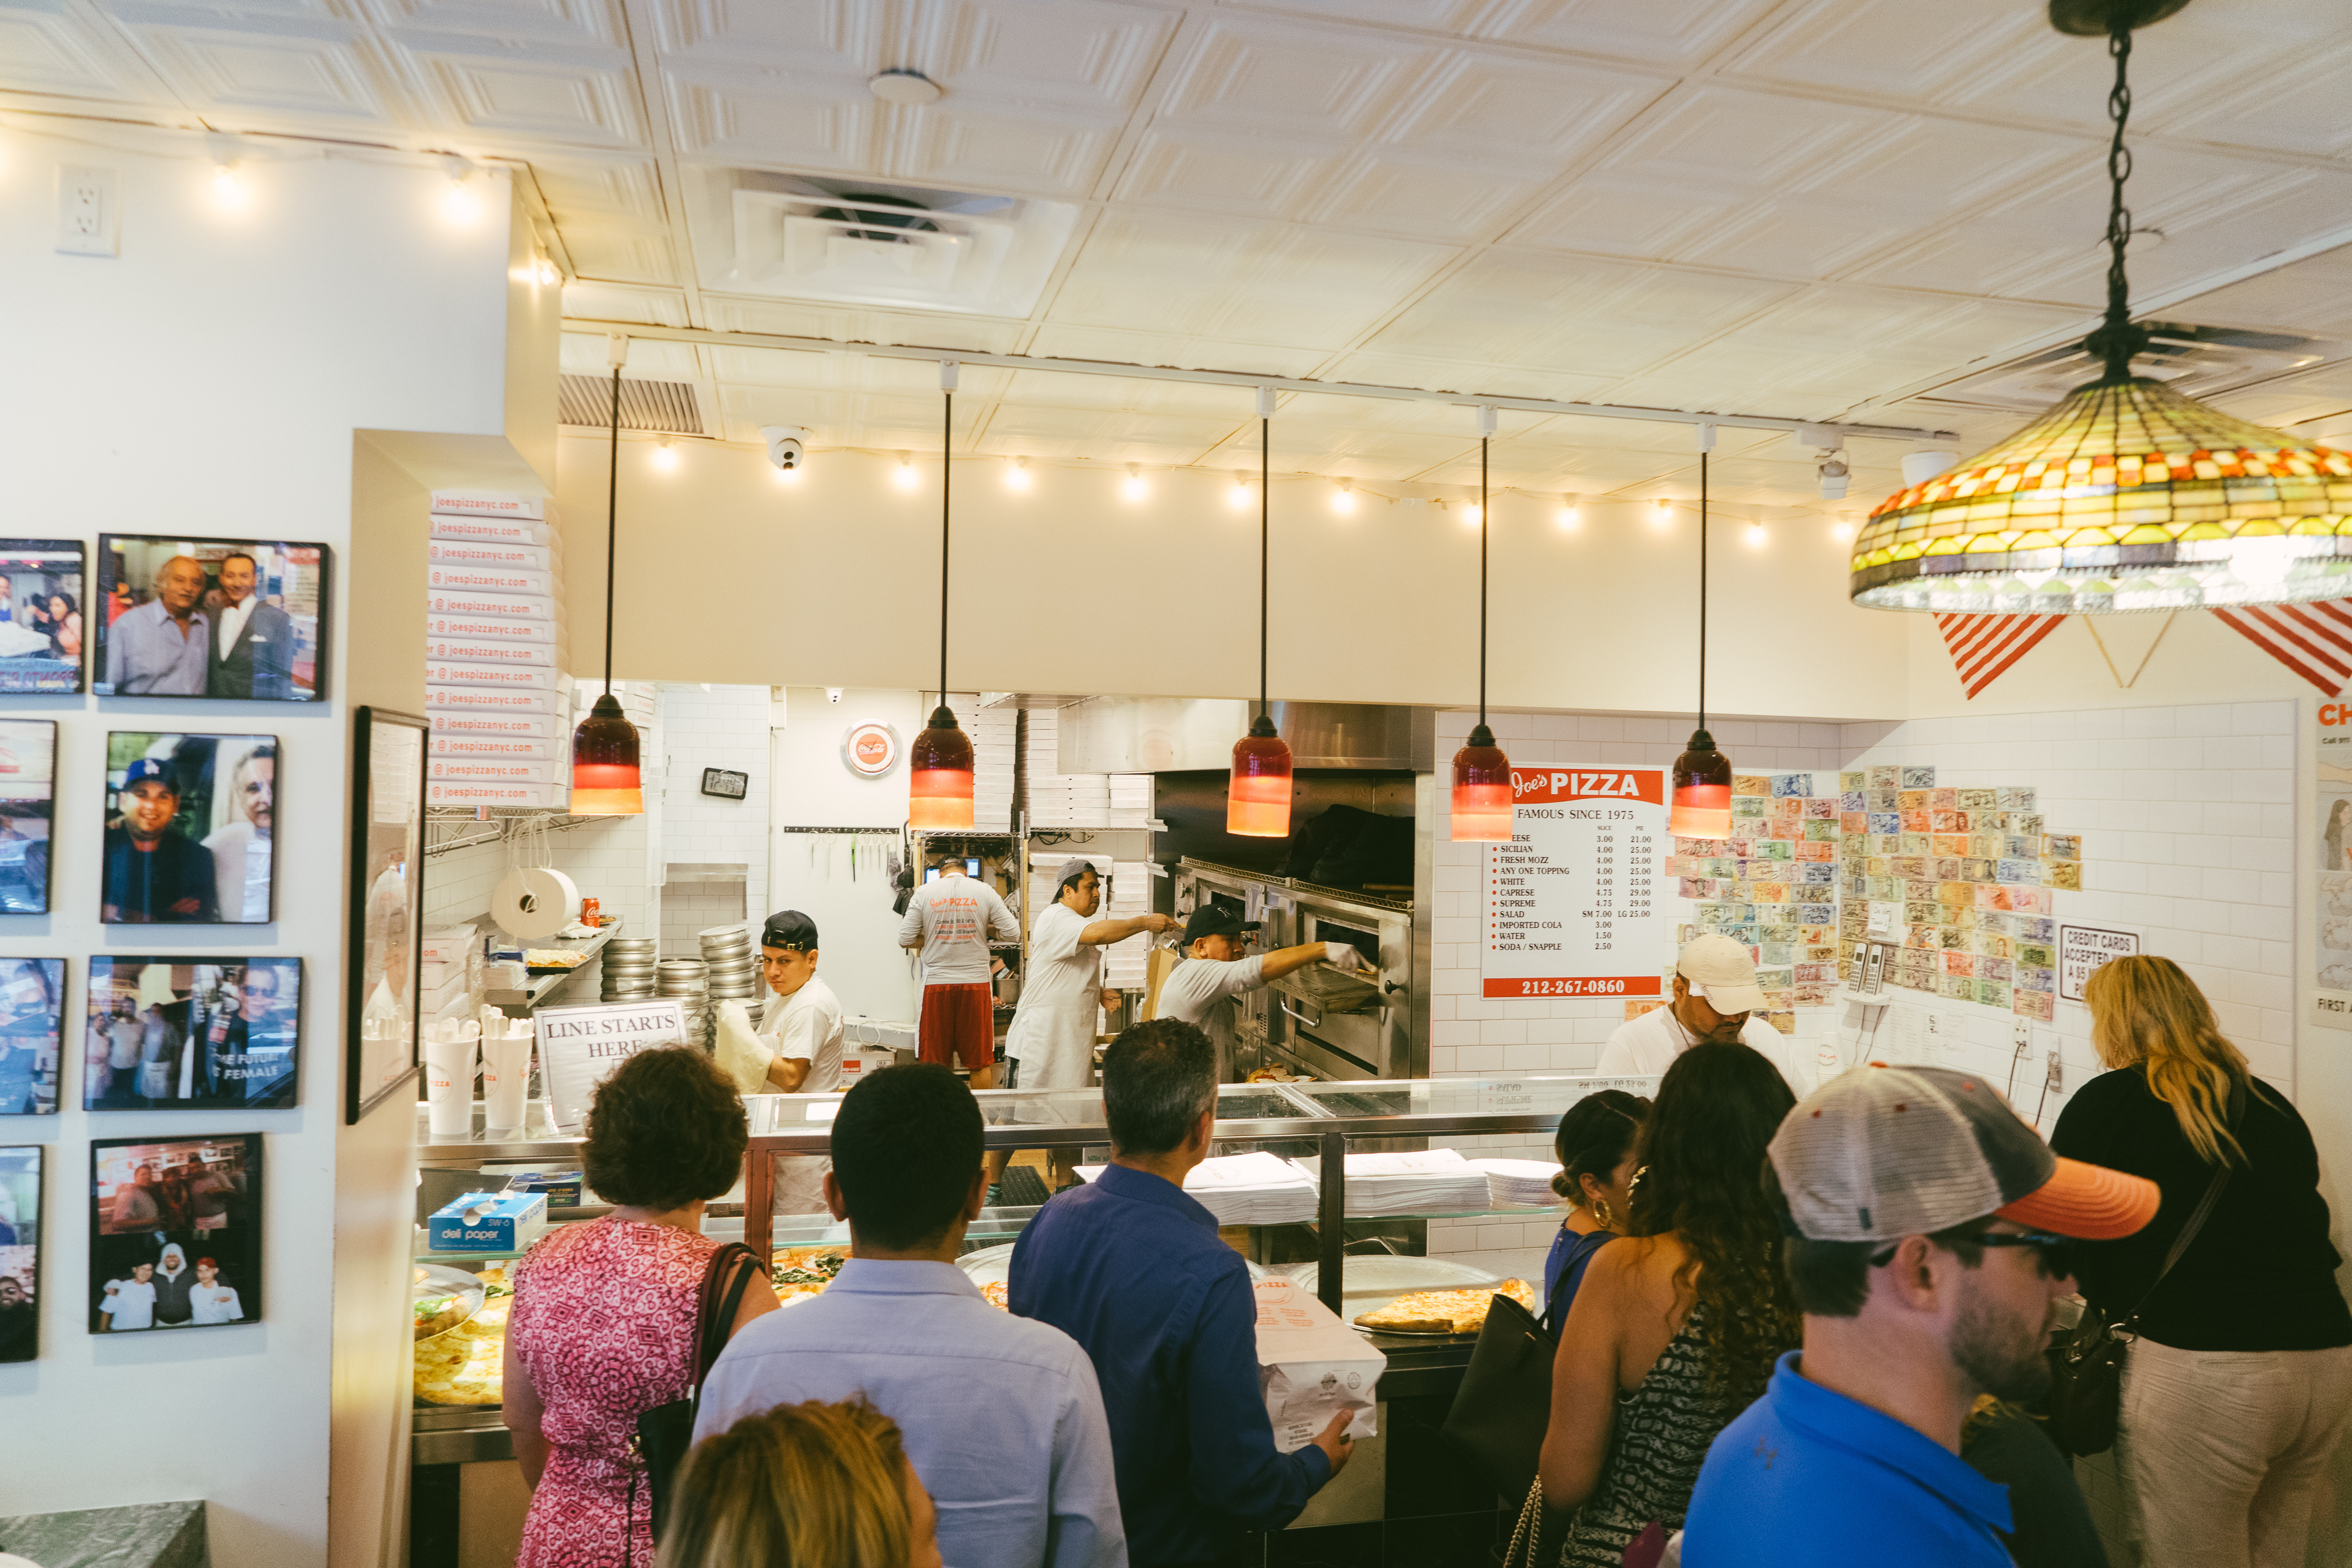 The Best Places To Eat In The Financial District - New York - The